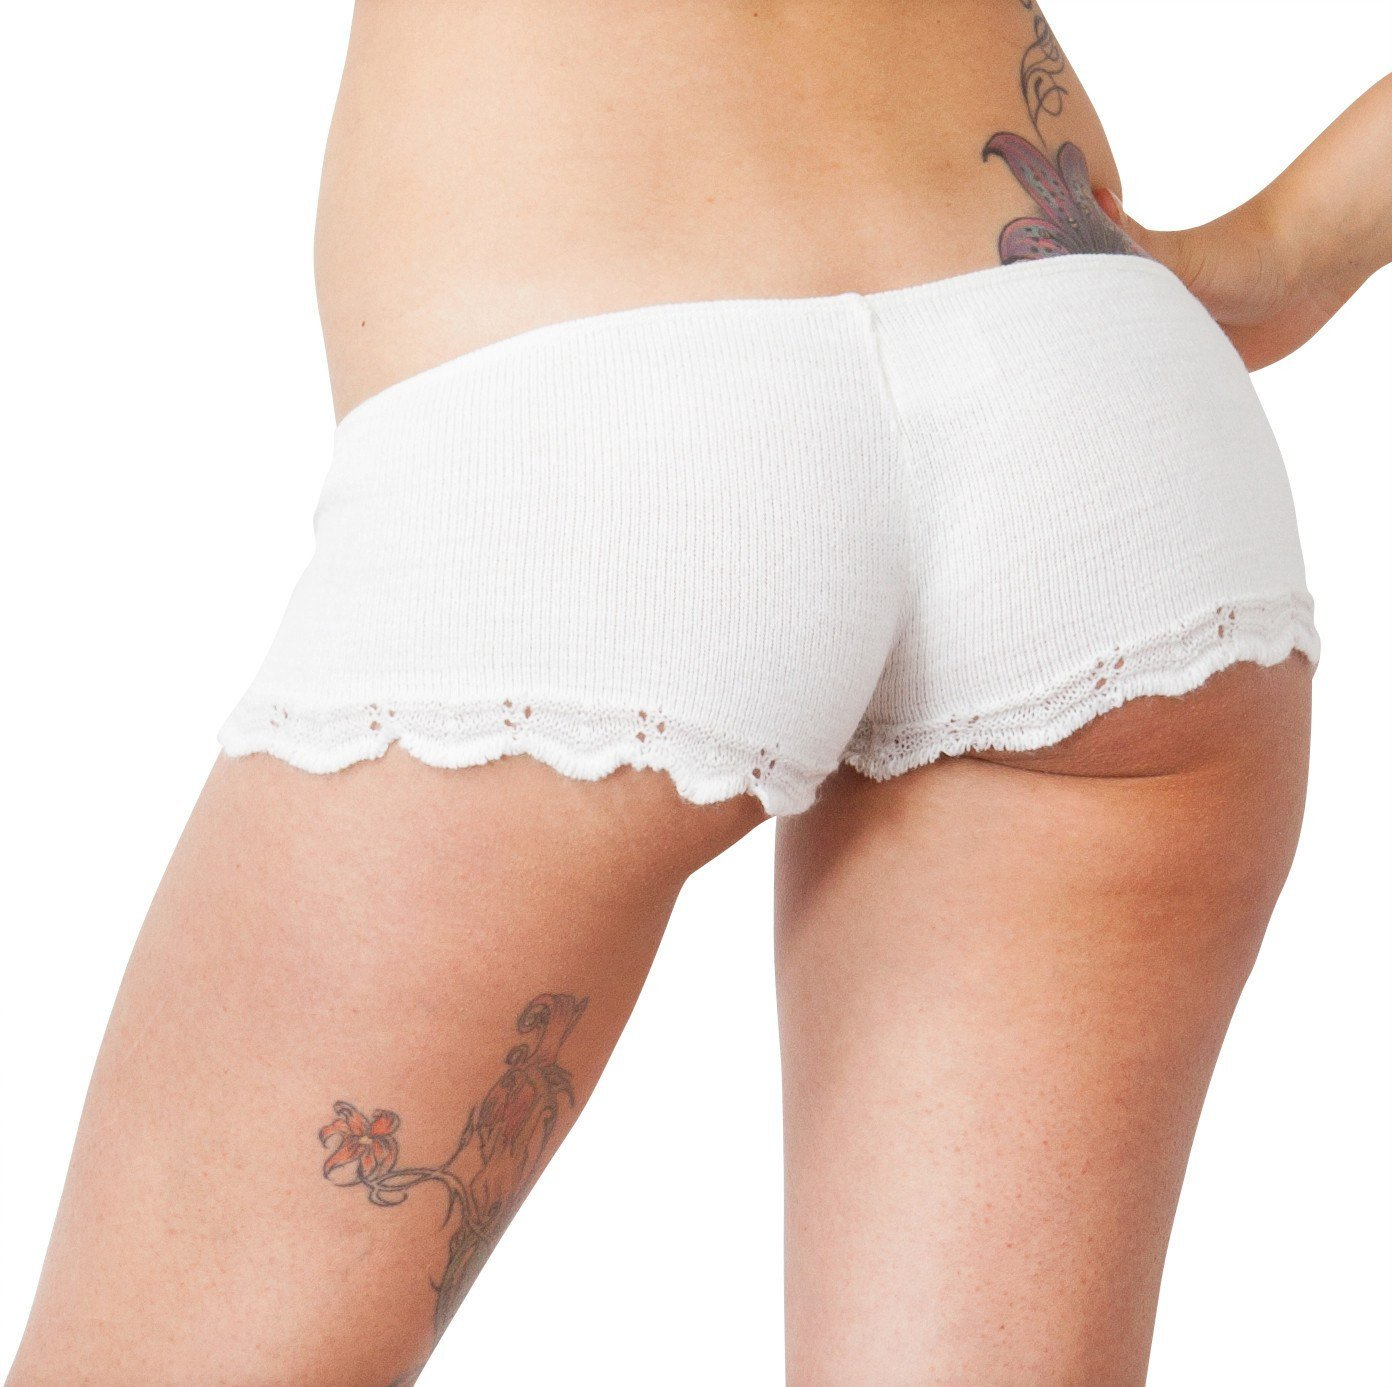 White / Small Bikini Short Shorts / Lace Trim / Stretch Knit / Cheeky Shorts @KDdanceNewYork #MadeInUSA - 1